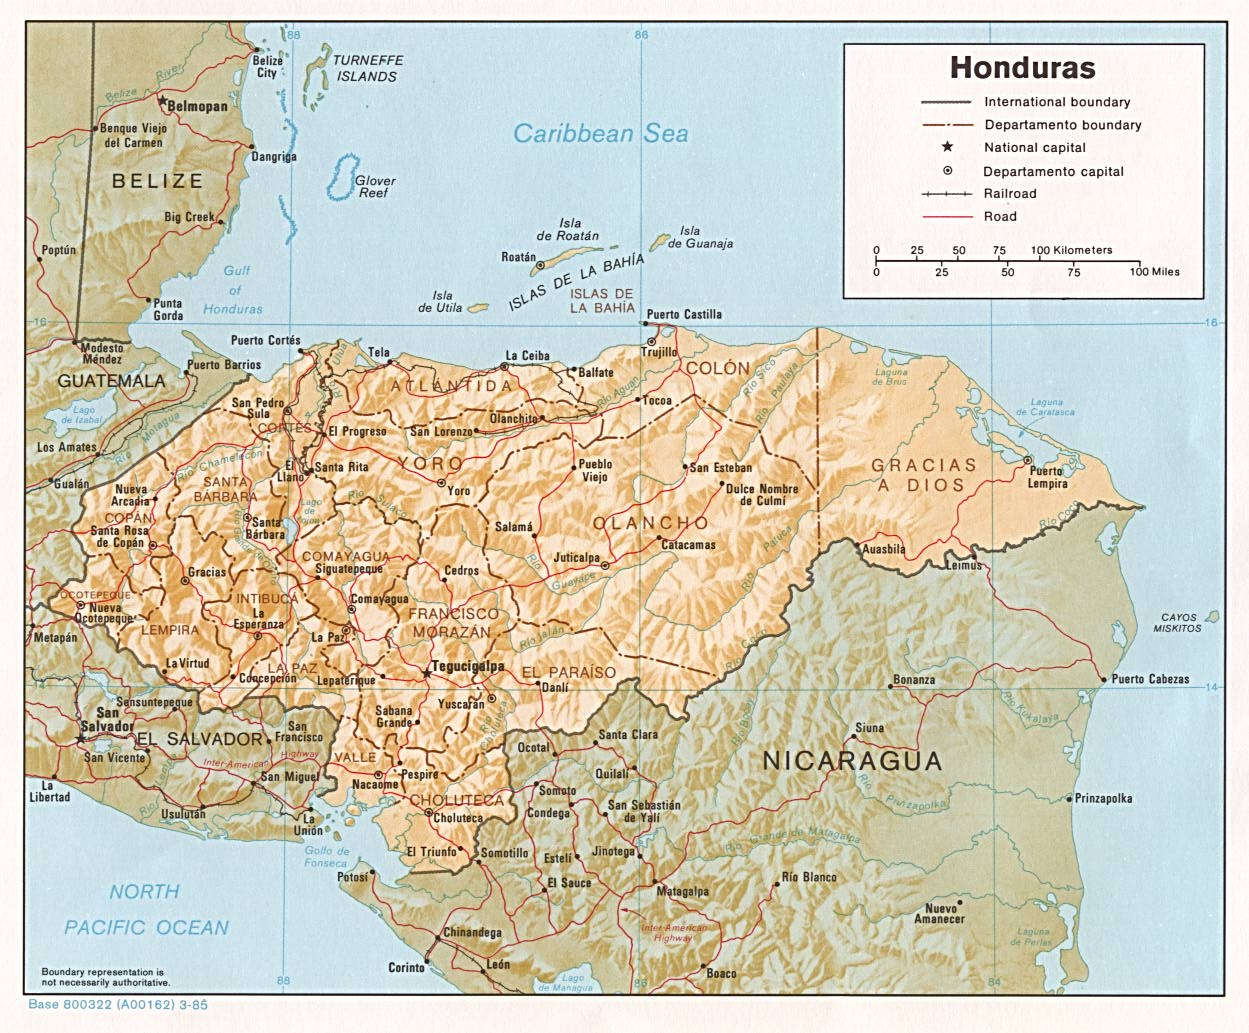 Map of Honduras 1985